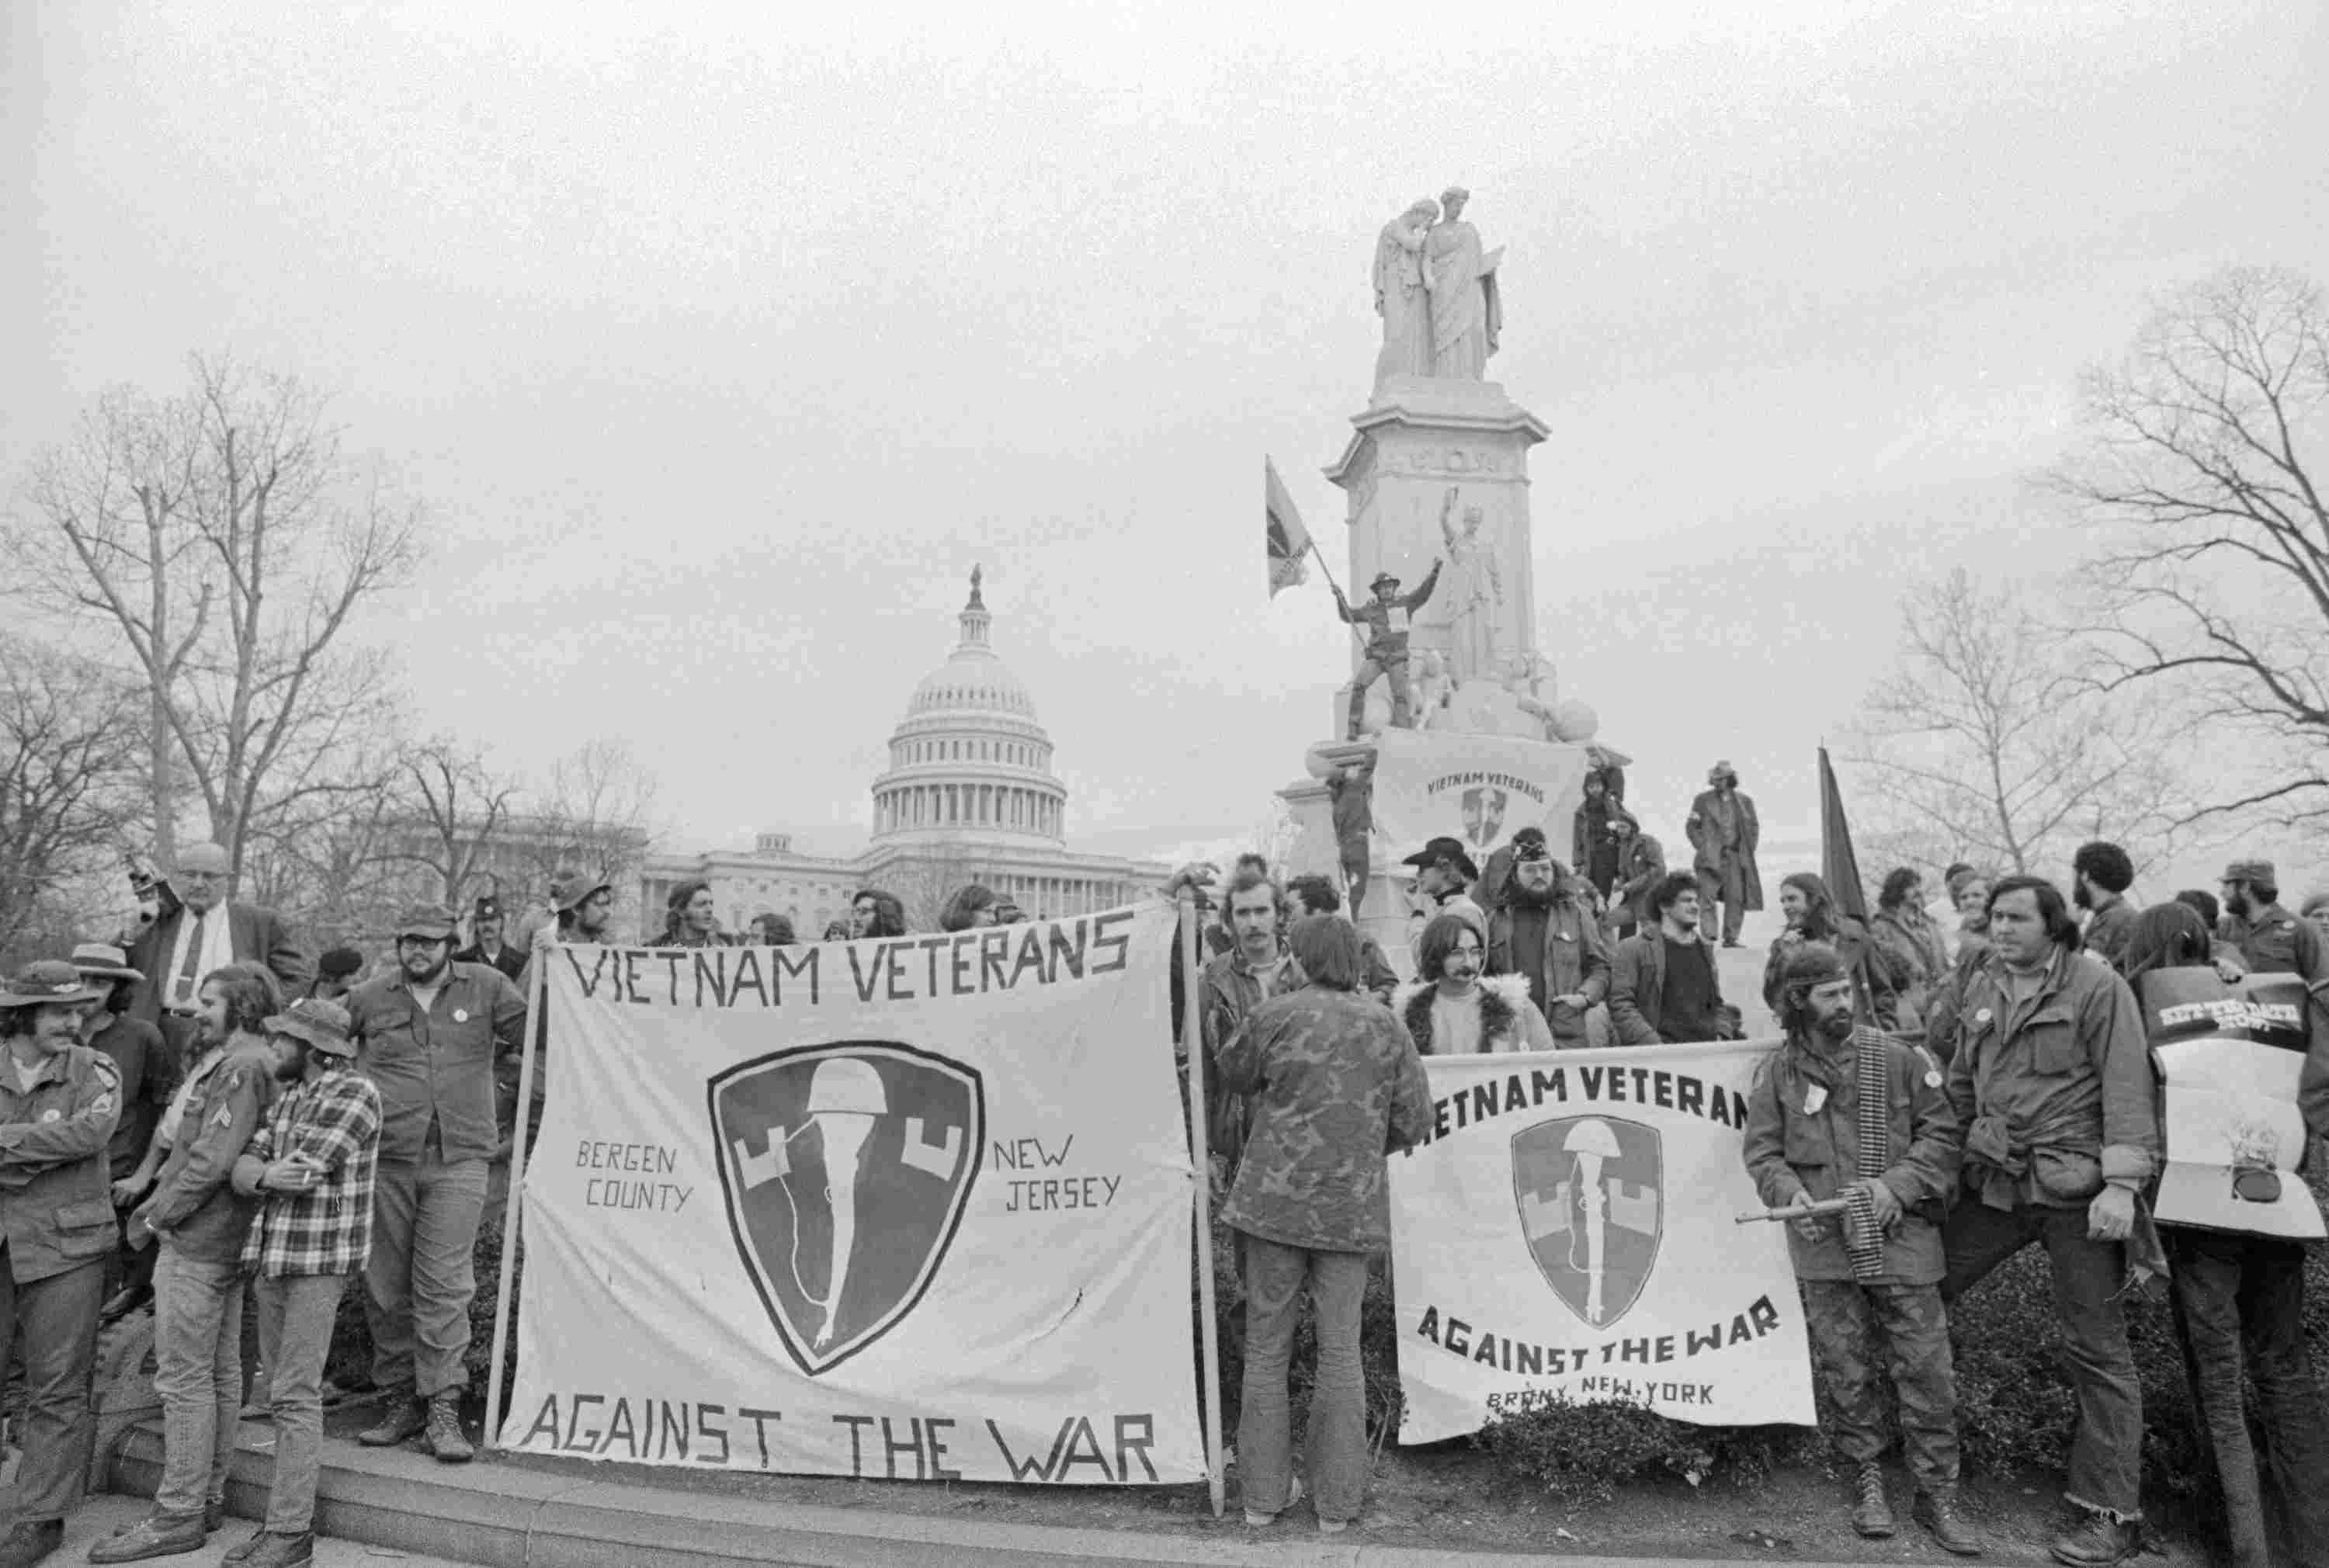 Photograph of protest by Vietnam Veterans Against the War